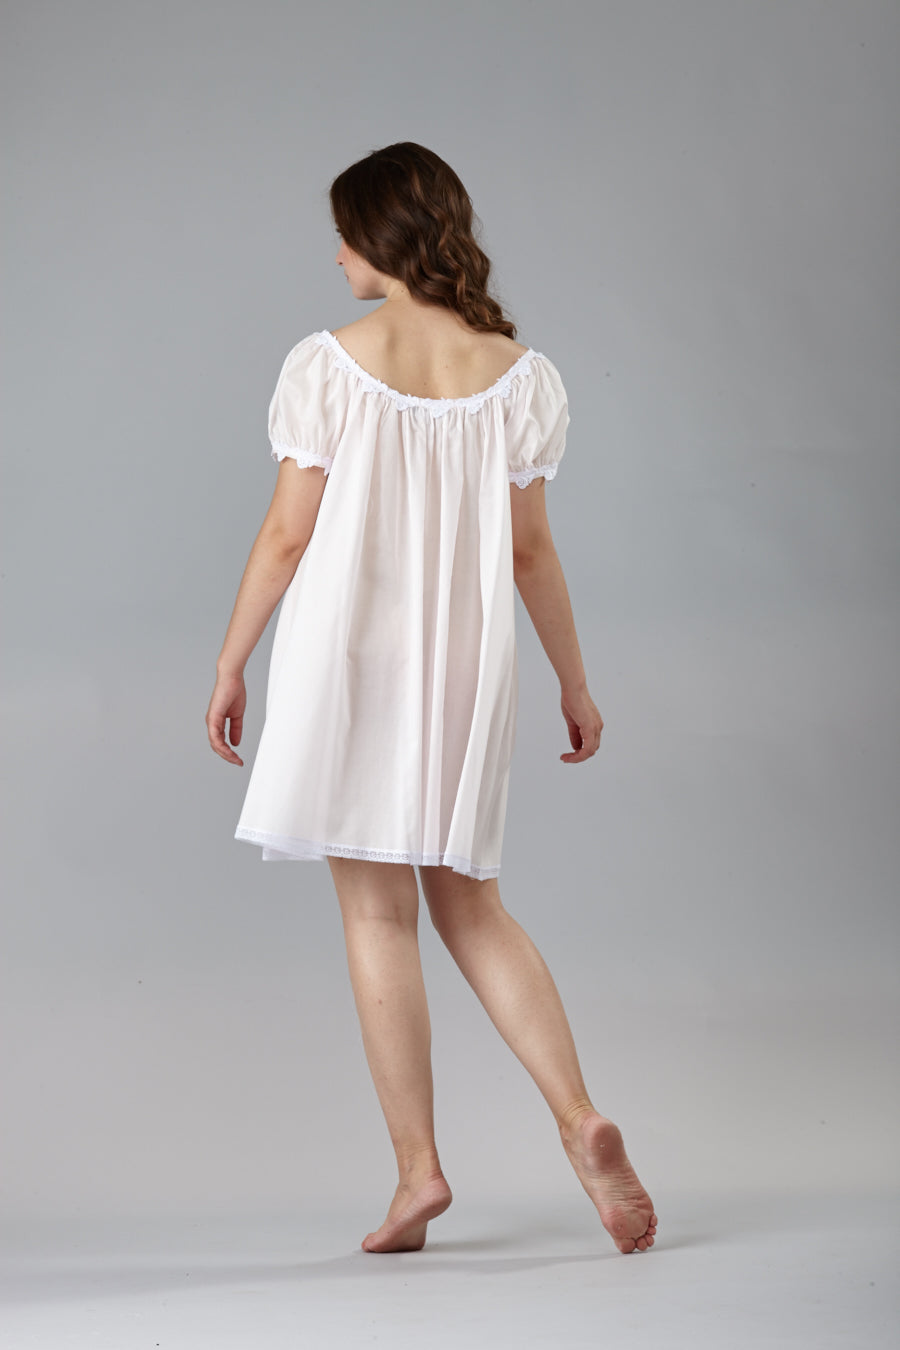 40318 Short nightgown